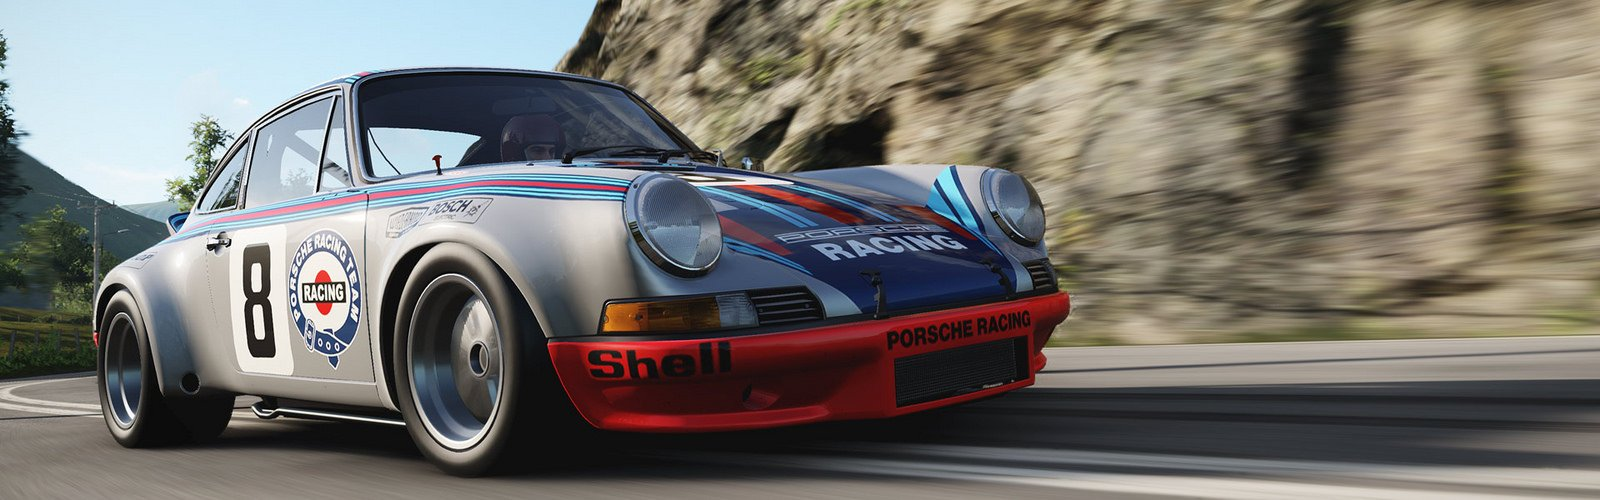 Project CARS 2 Porsche 911 RSR 2.8 preview alternate resolution preview